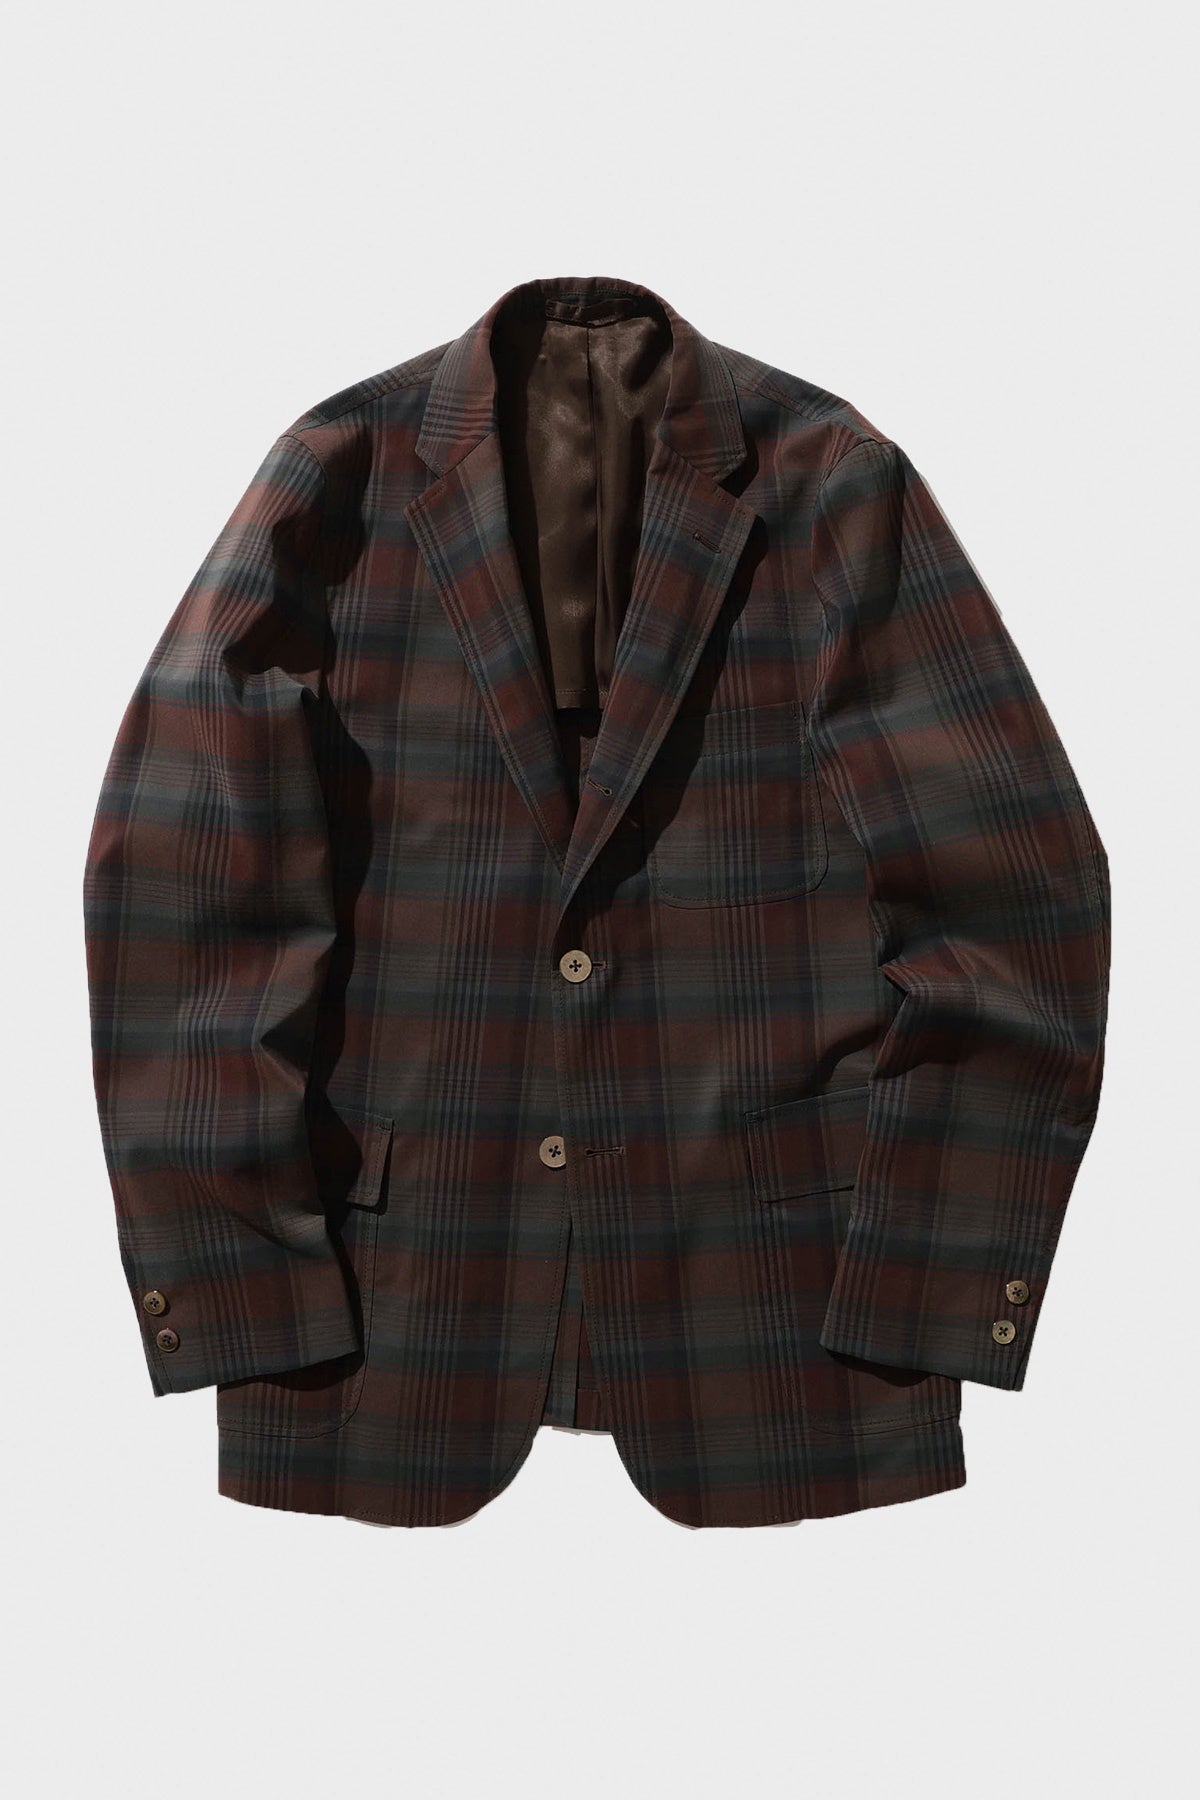 Beams Plus - 3 Button Check Jacket - Burgundy - Canoe Club